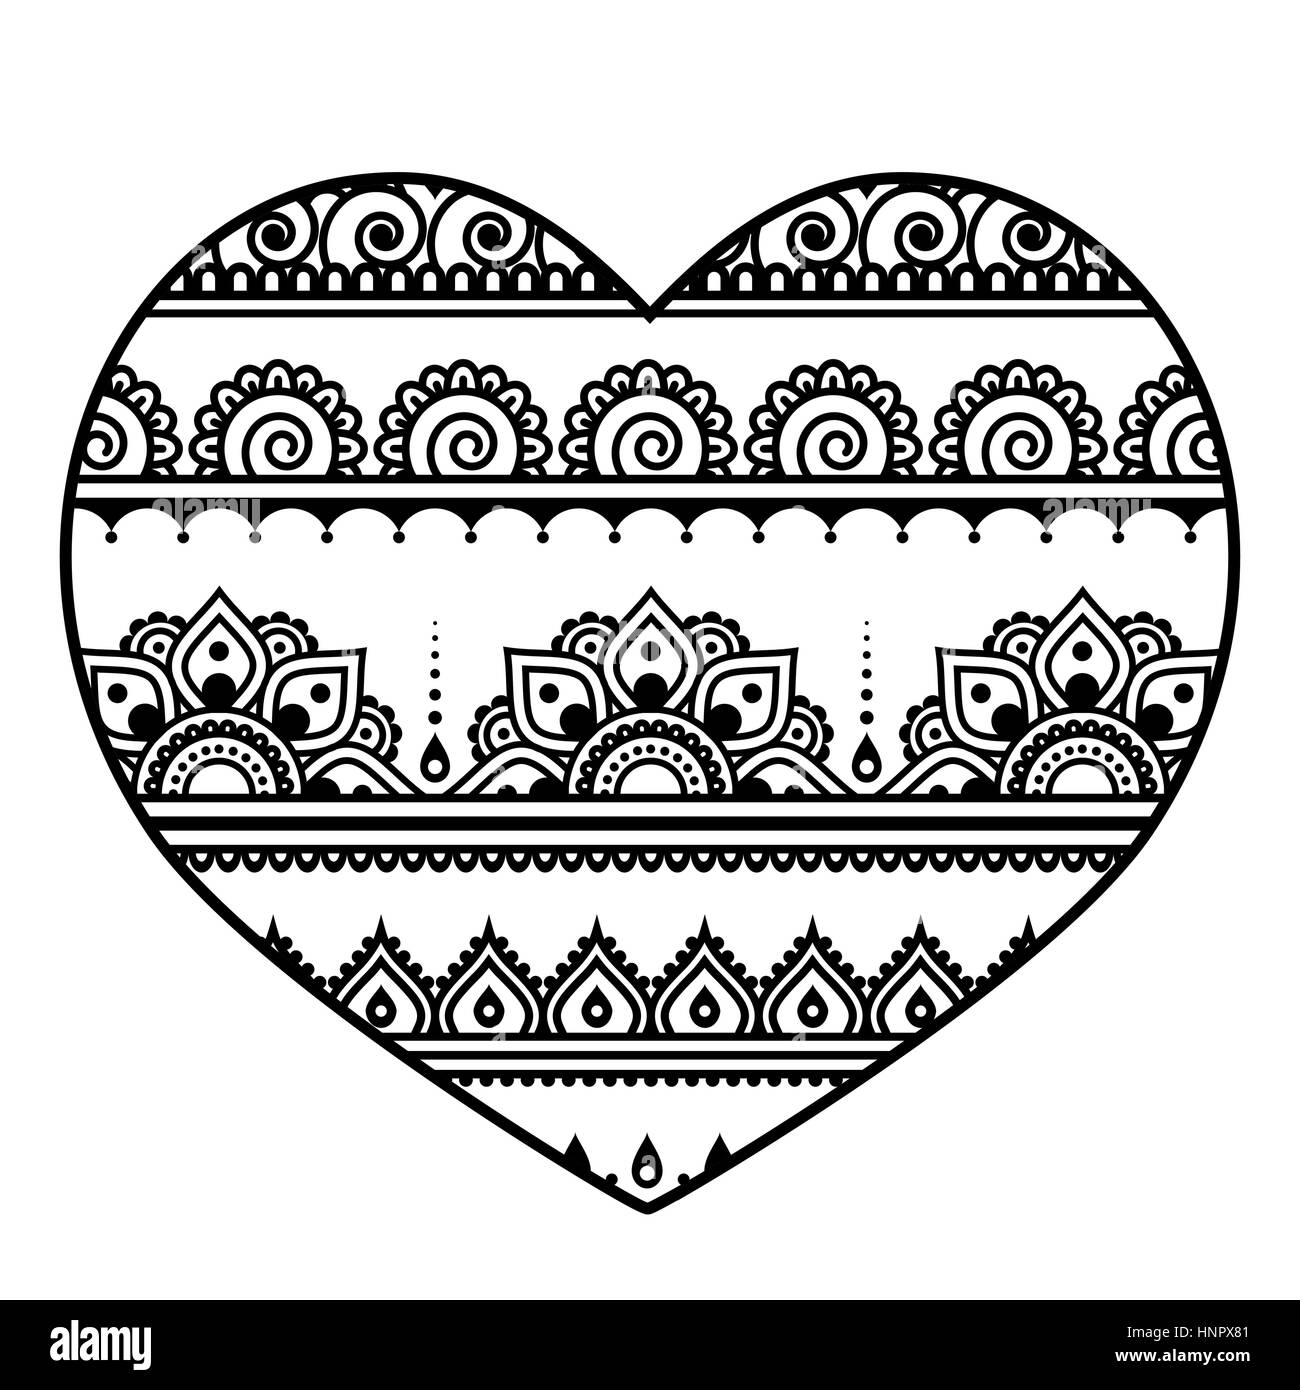 Valentine S Day Heart Mehndi Indian Henna Tattoo Pattern Stock